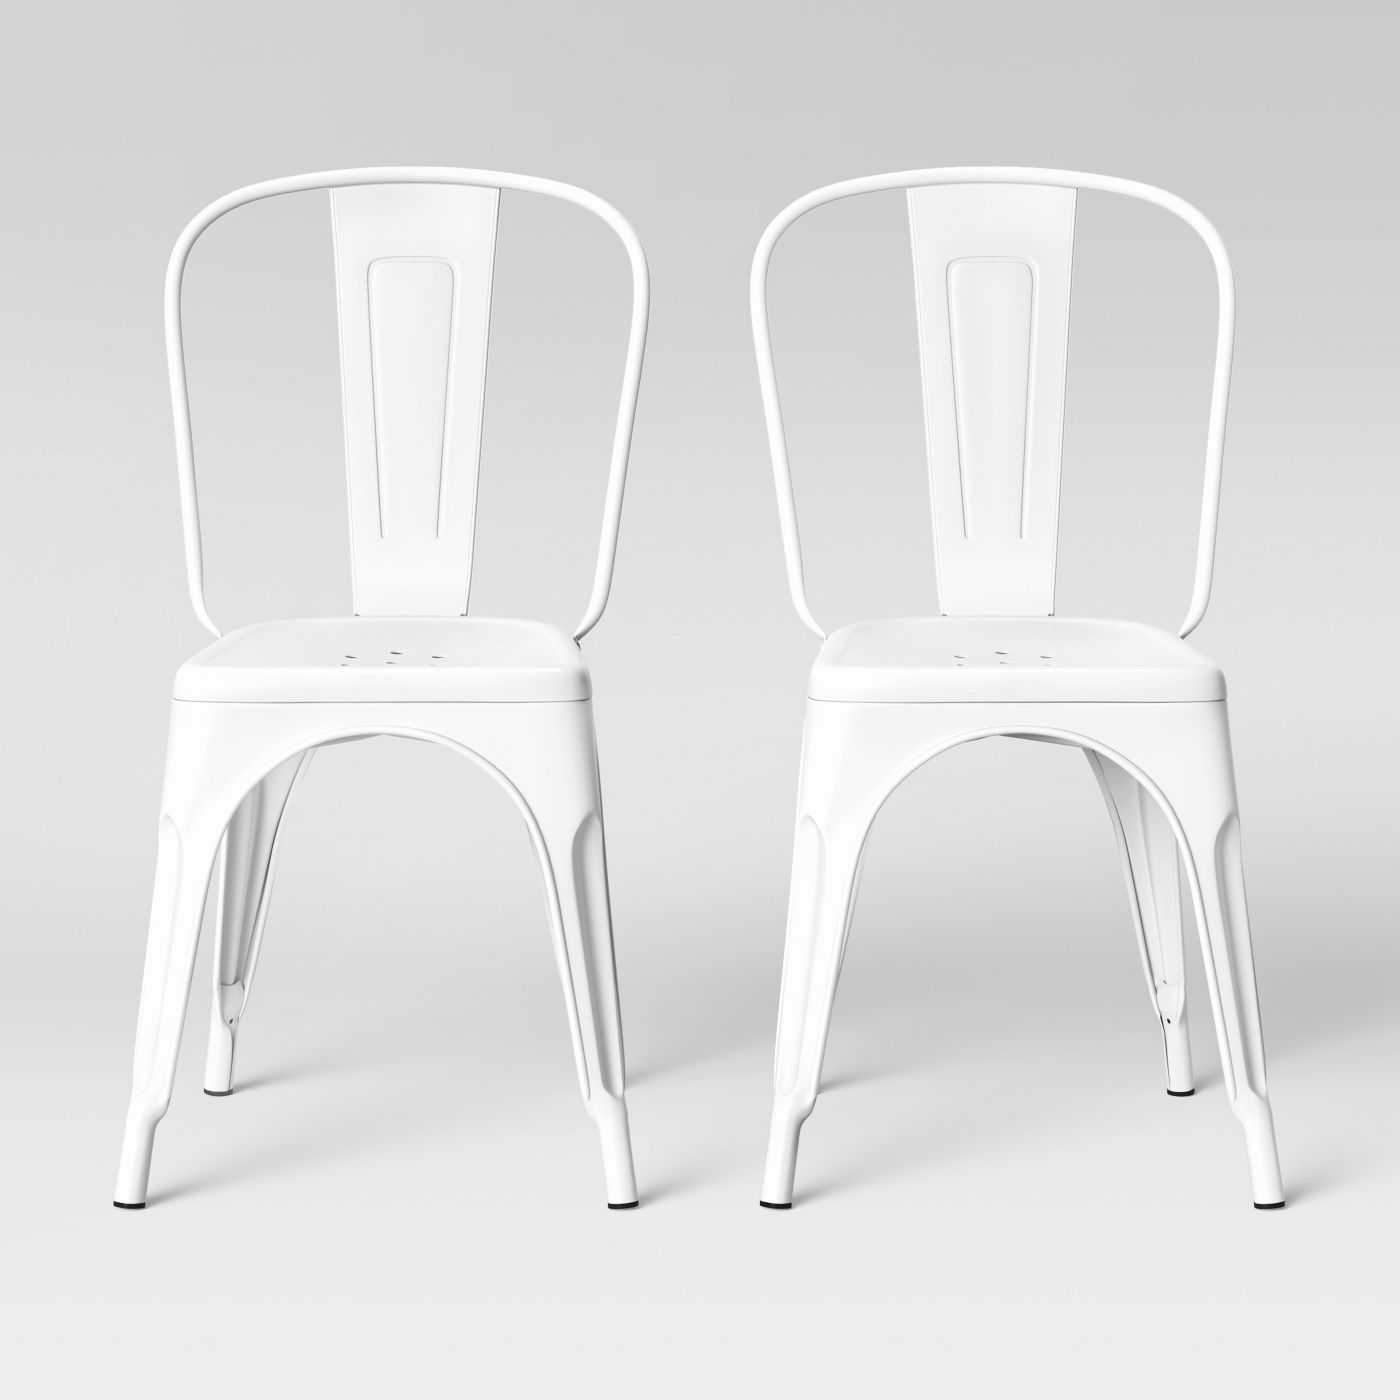 Carlisle High Back Dining Chairs in Matte White, Set of 2